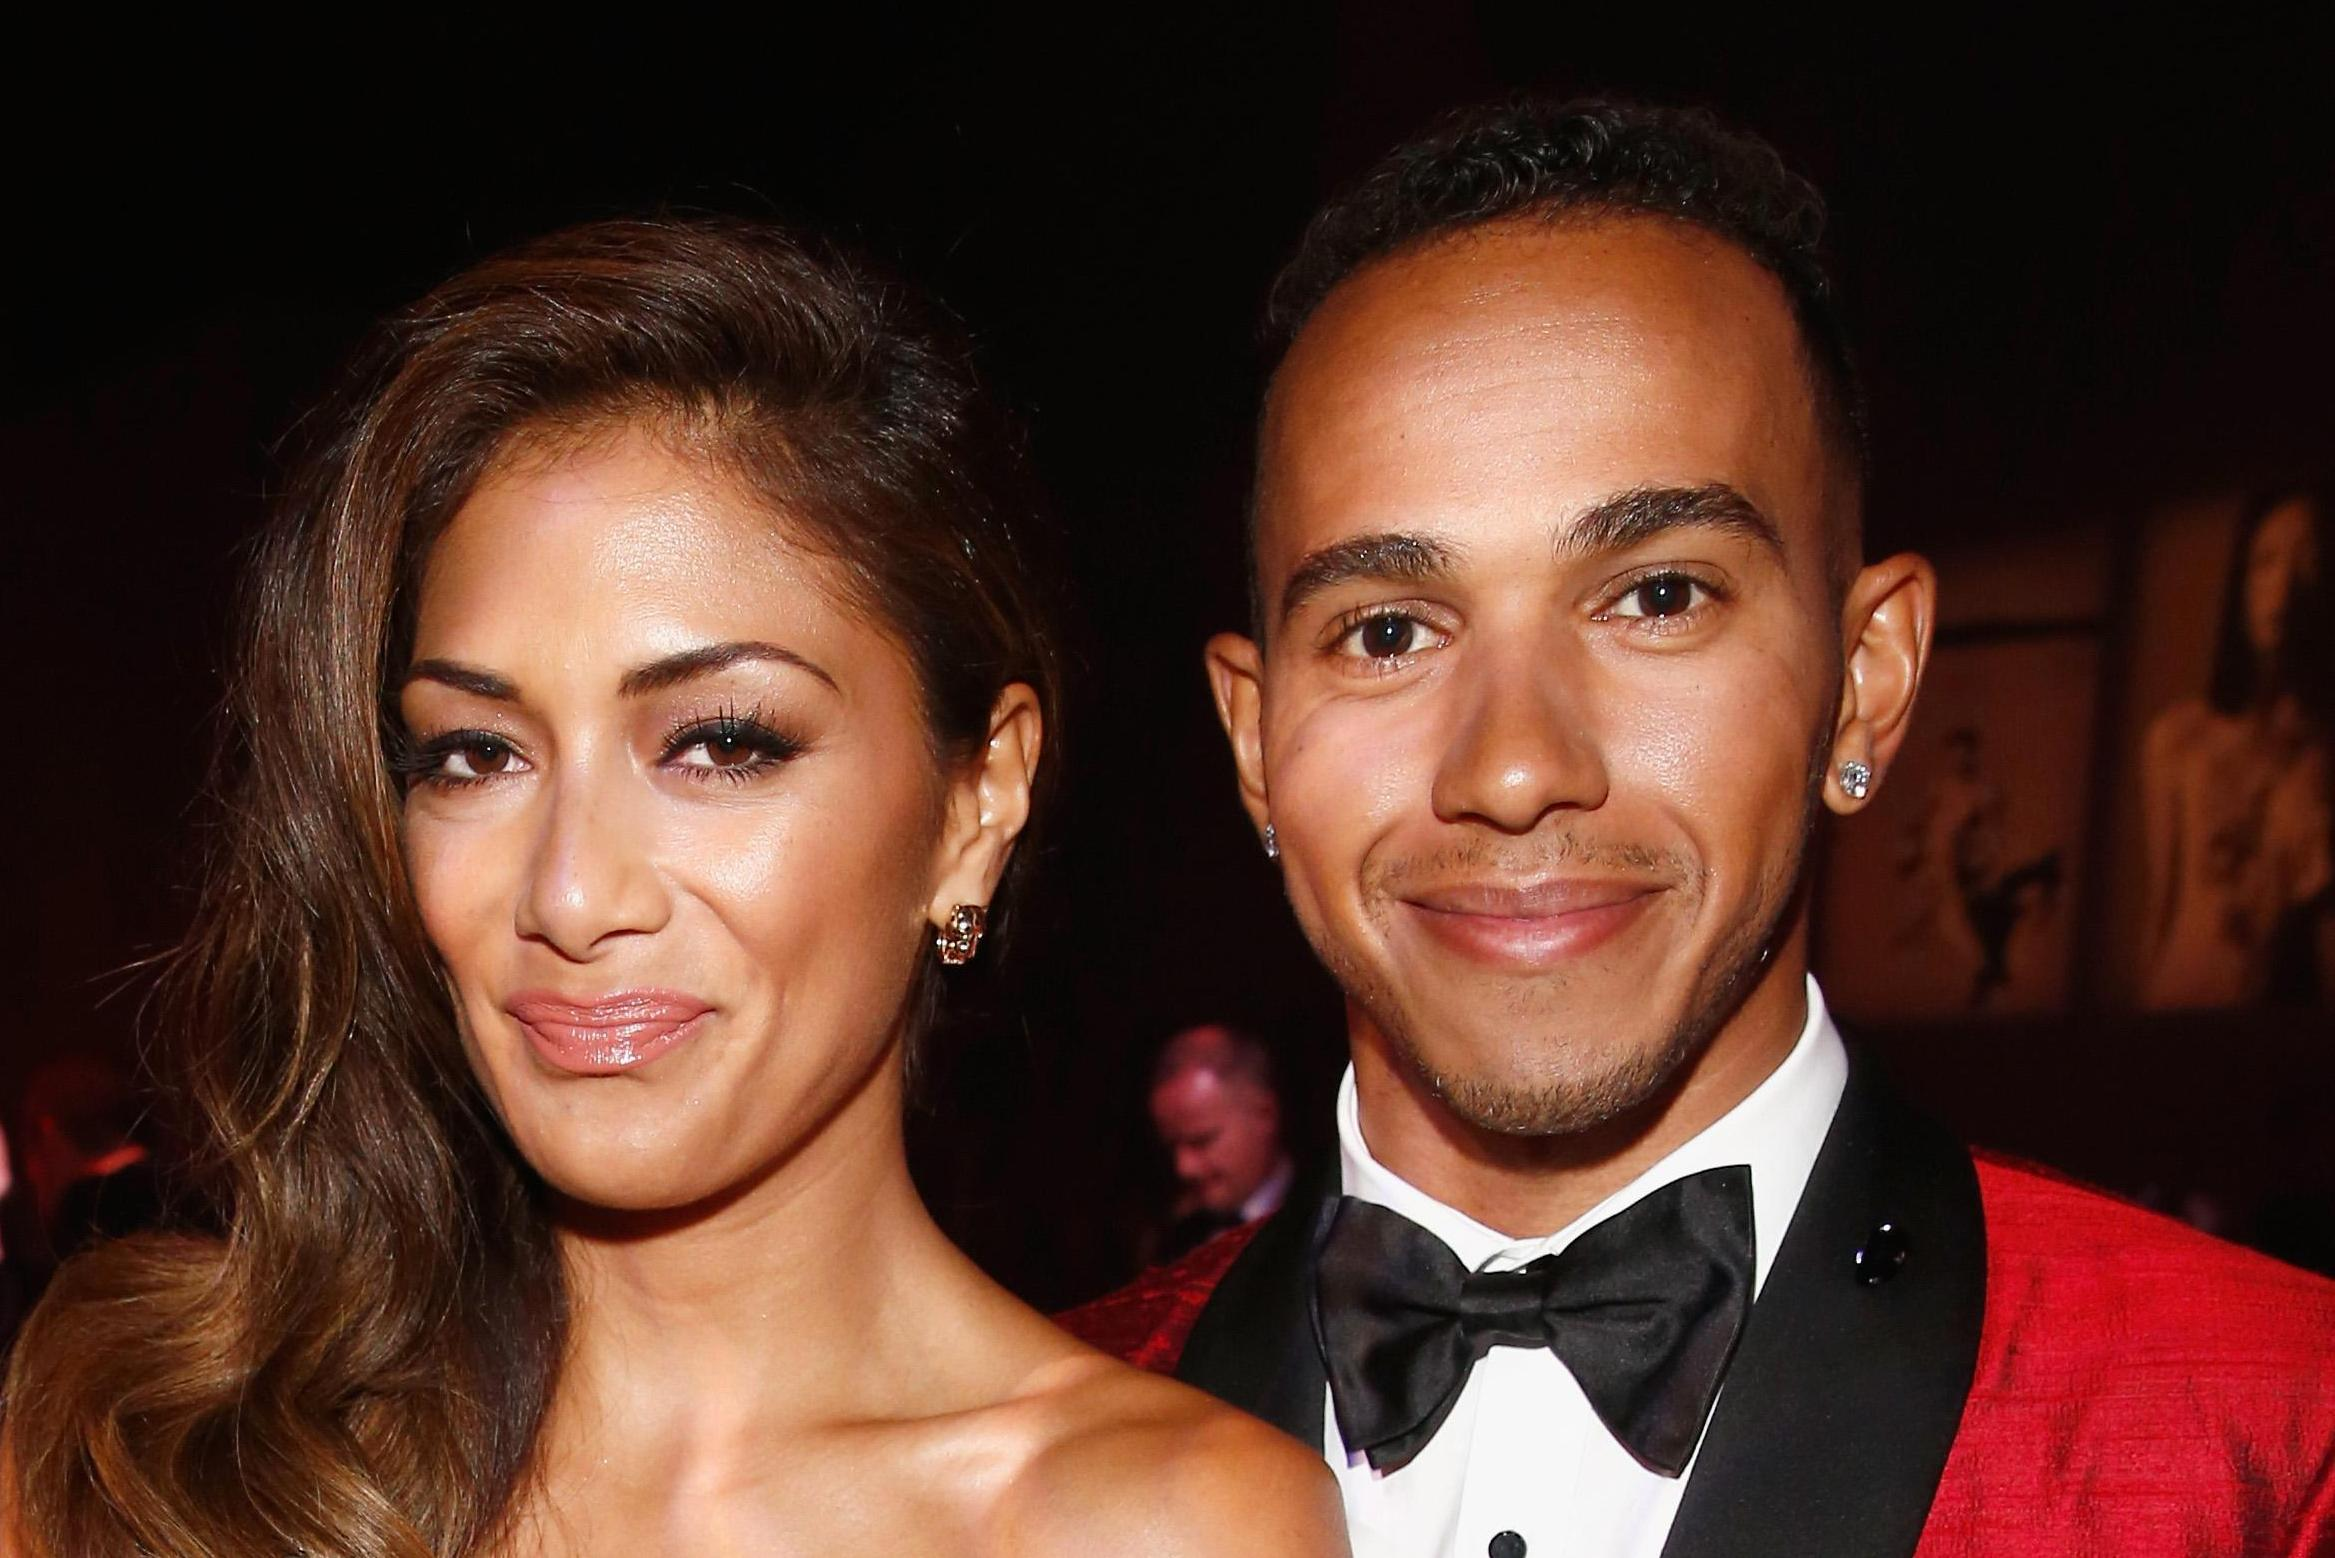 Who has Lewis Hamilton dated? Nicole Scherzinger, Rita Ora, Danielle Lloyd, and more – five-time F1 champ's full list of girlfriends